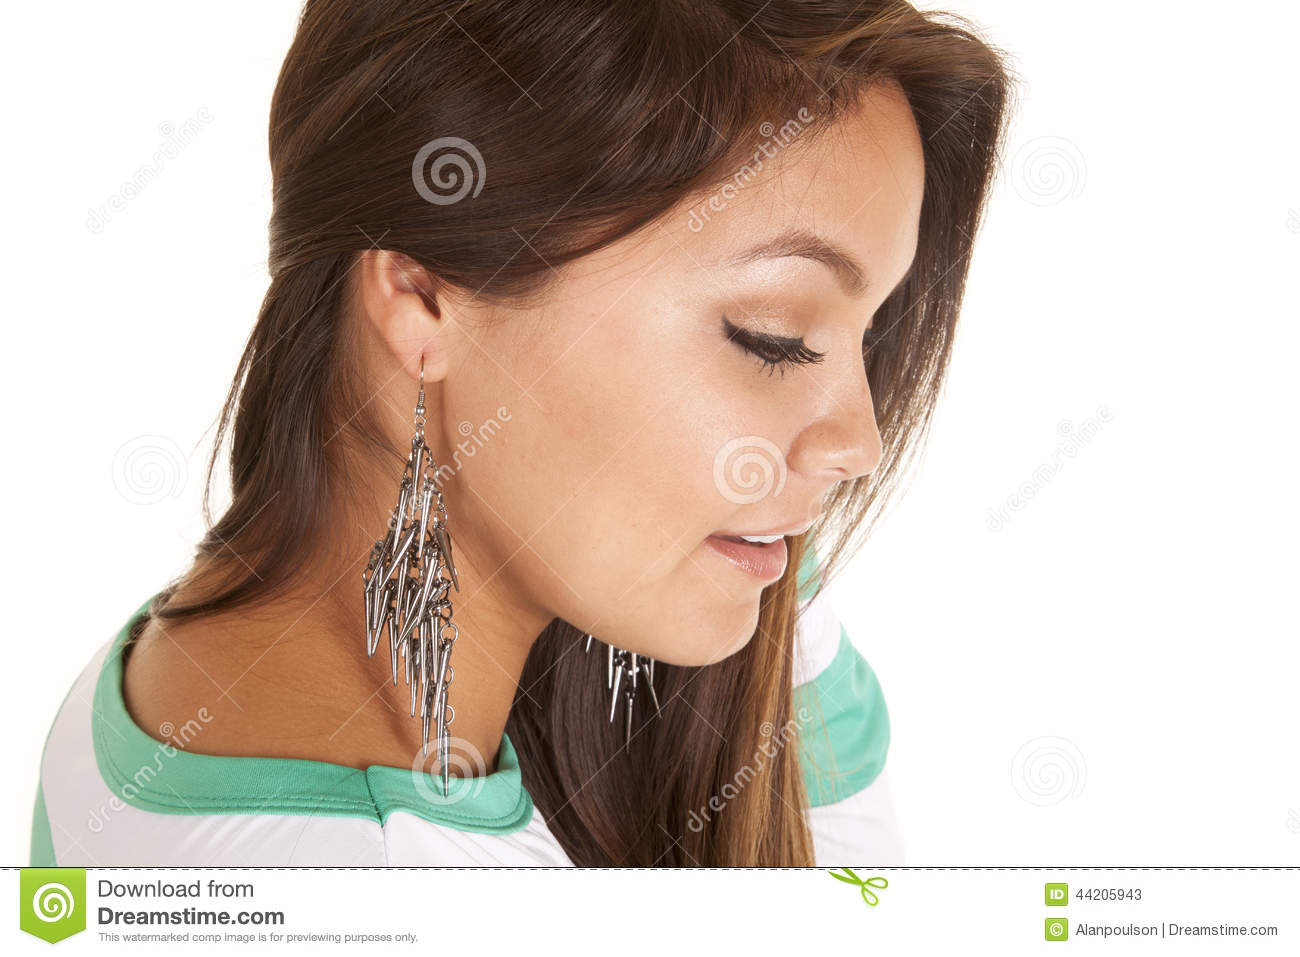 stones a image in beautiful from jewelry legal stock ring diamonds photo woman precious model and earrings necklace